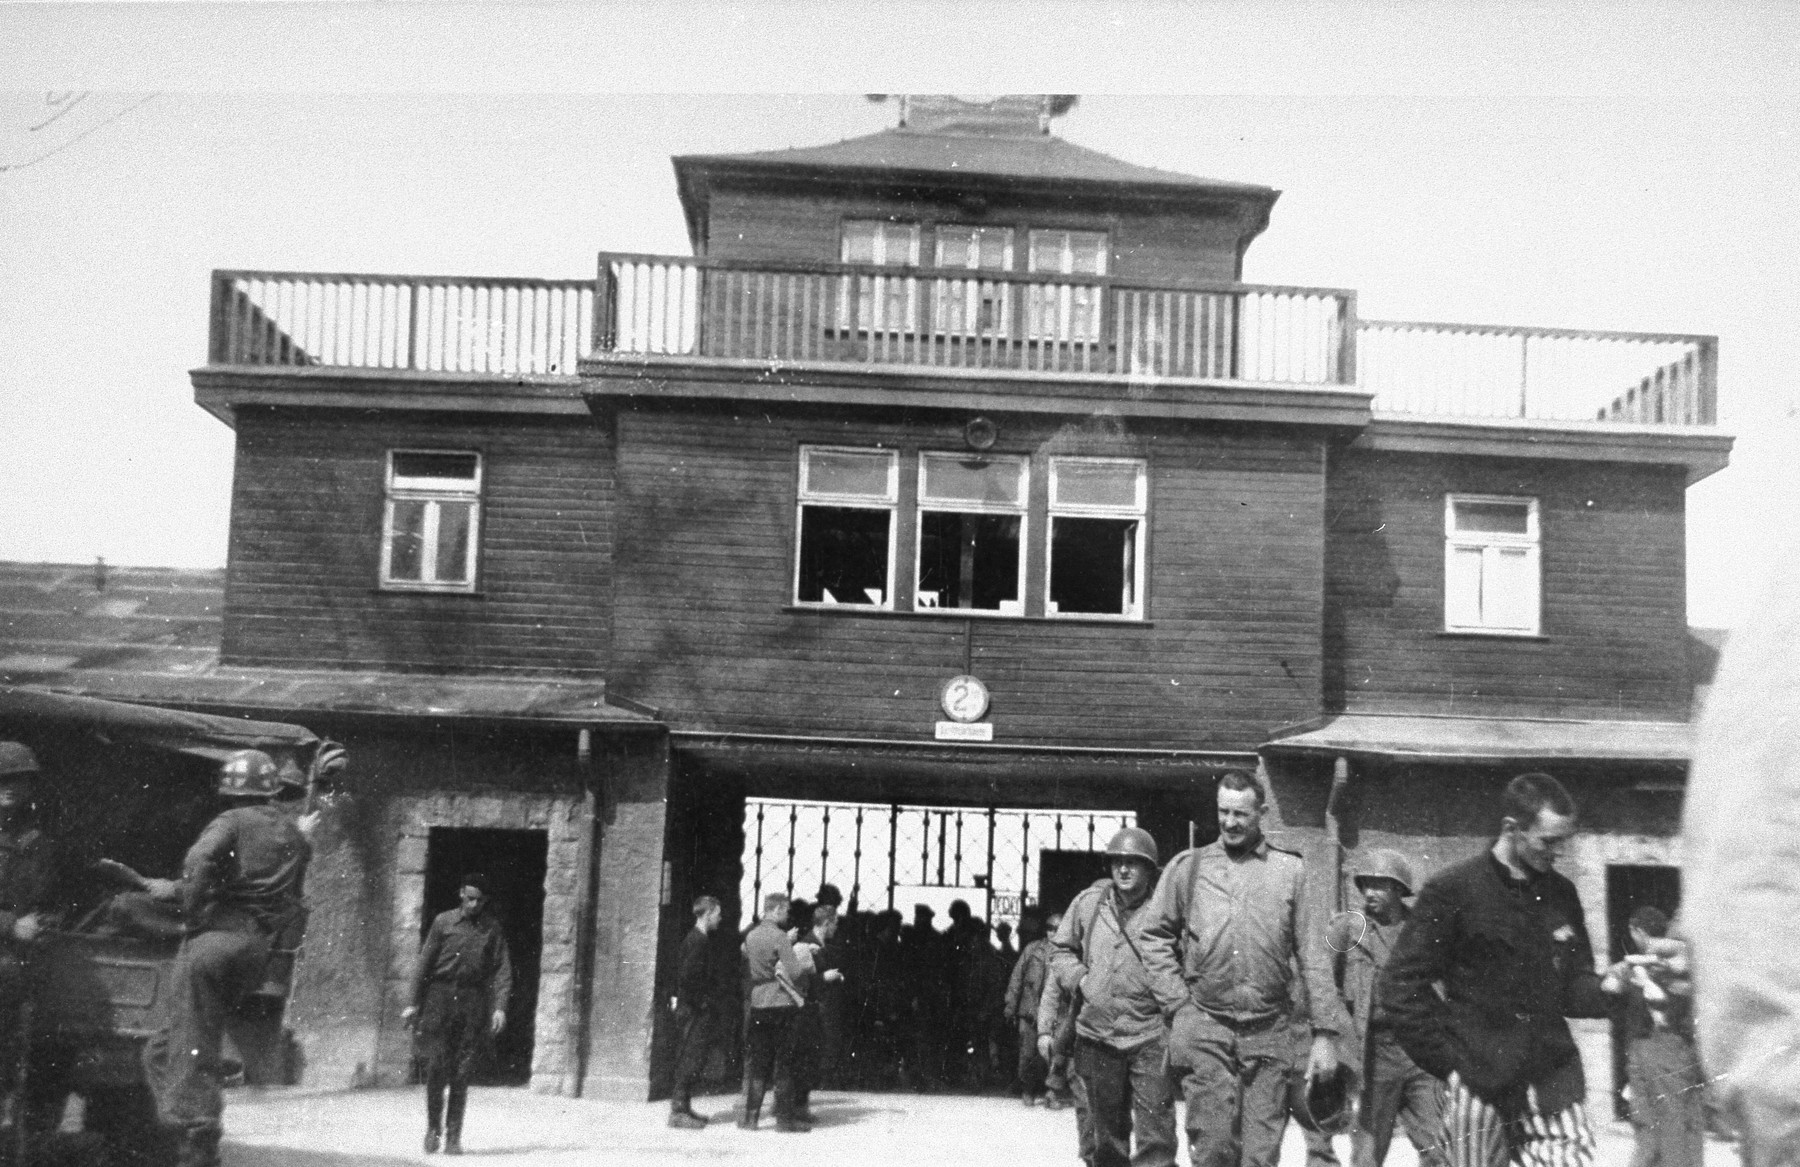 American troops and survivors walk in front of the main gate of the Buchenwald concentration camp.